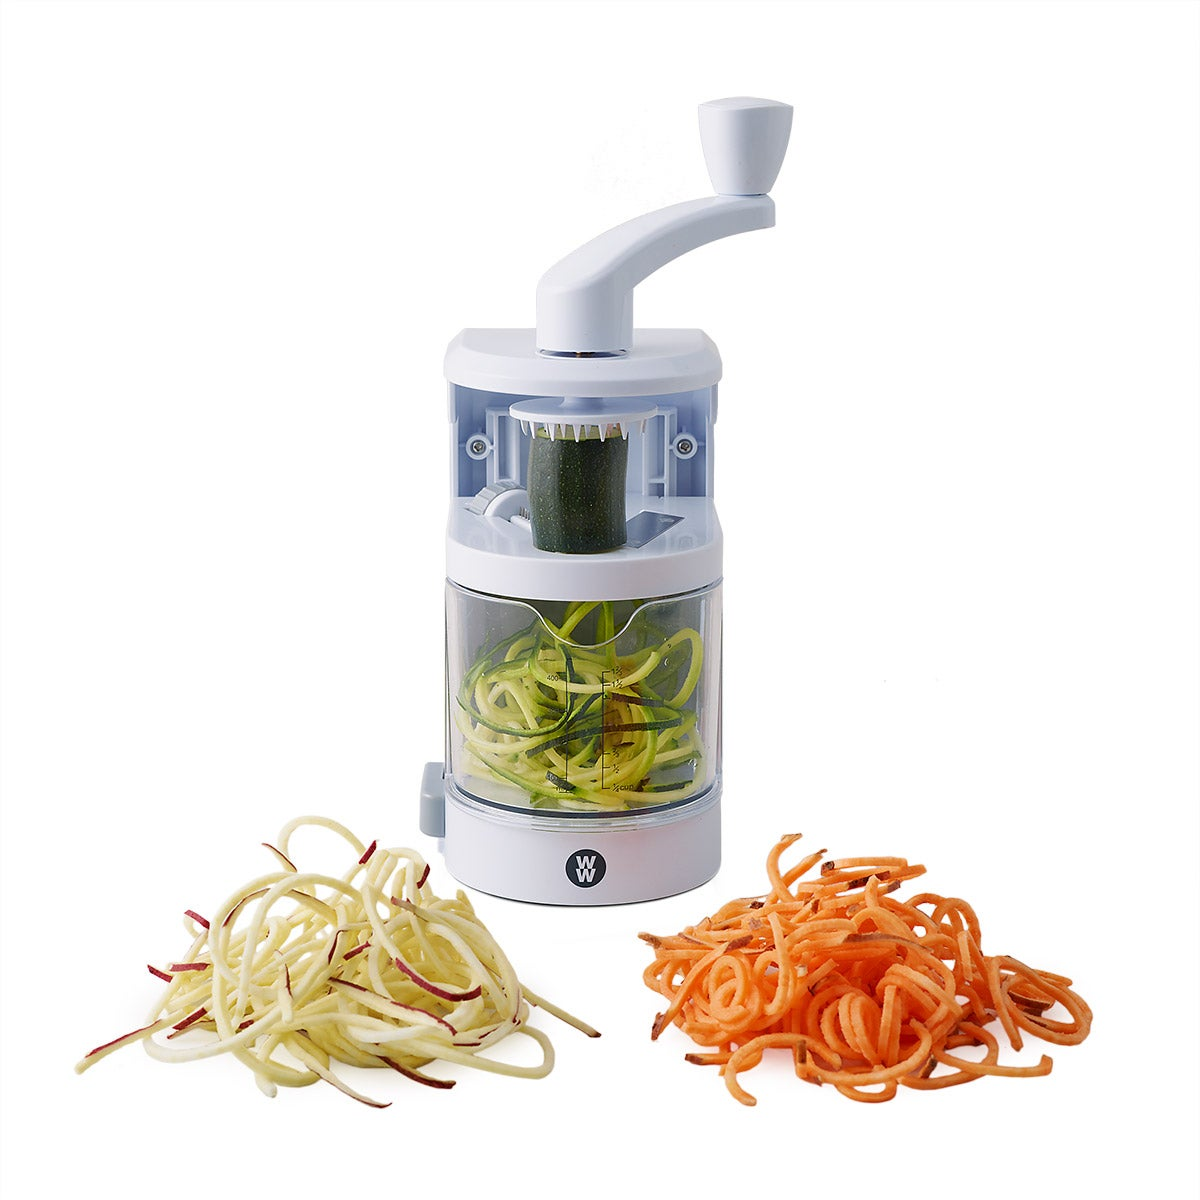 3-Blade Built-In Dial Spiralizer w/ Container